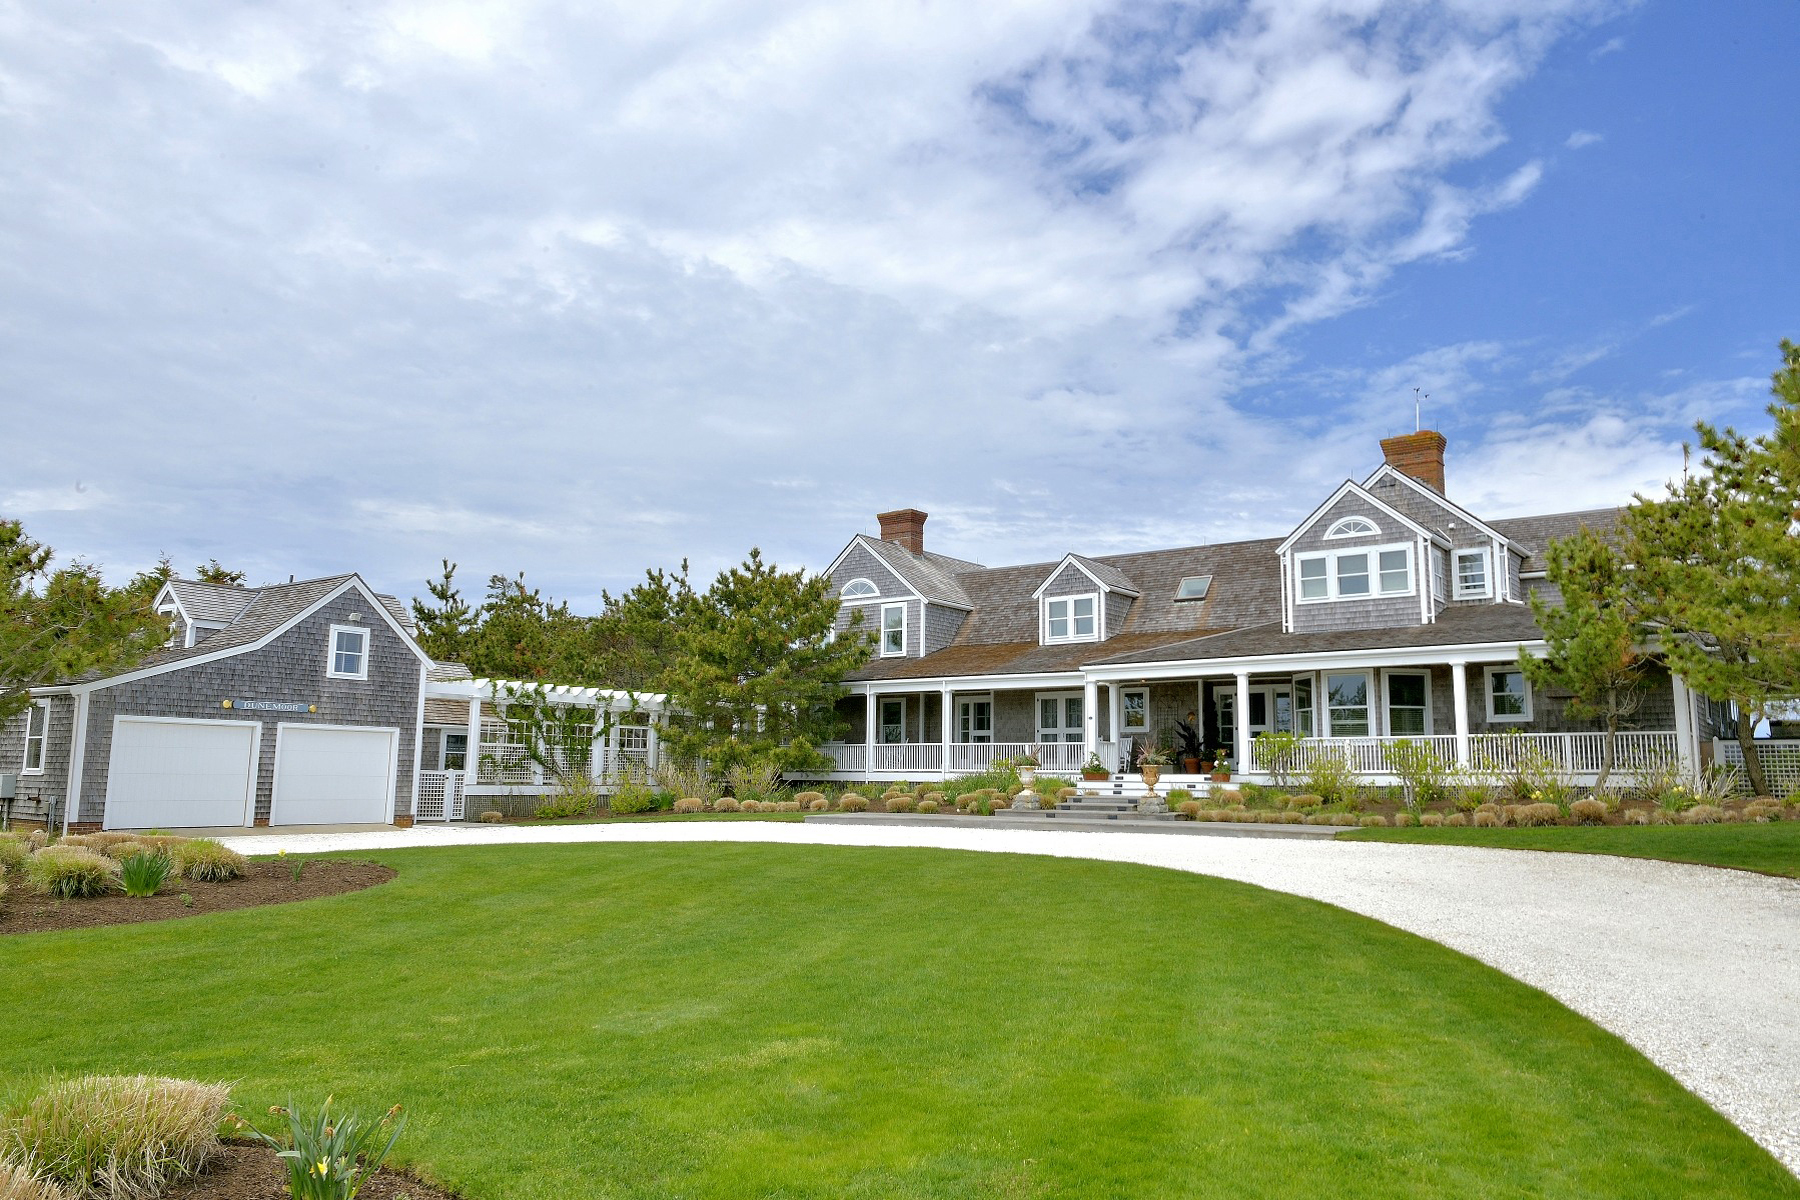 Villa per Vendita alle ore Spectacular Oceanfront Dionis! 119 Eel Point Road 119 R Eel Point Road Nantucket, Massachusetts 02554 Stati Uniti